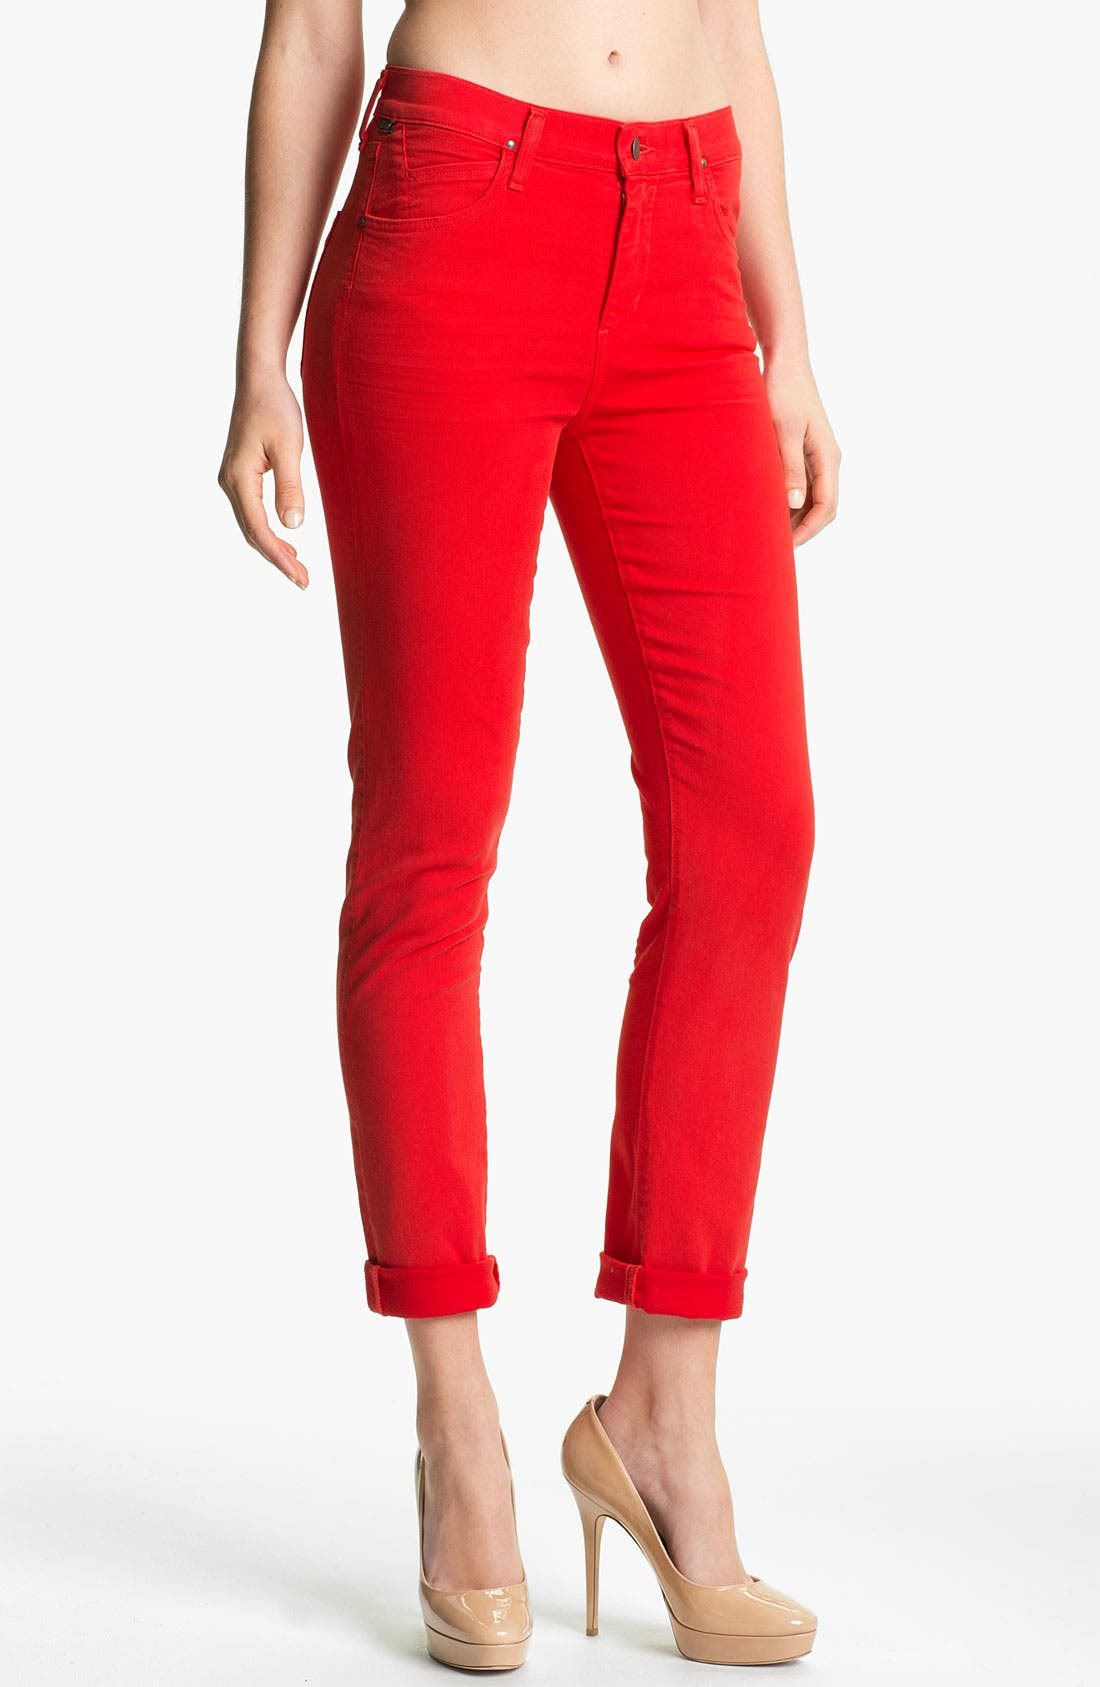 Alternate Image 1 Selected - Citizens of Humanity 'Carlton' Crop Skinny Jeans (Villa Red)